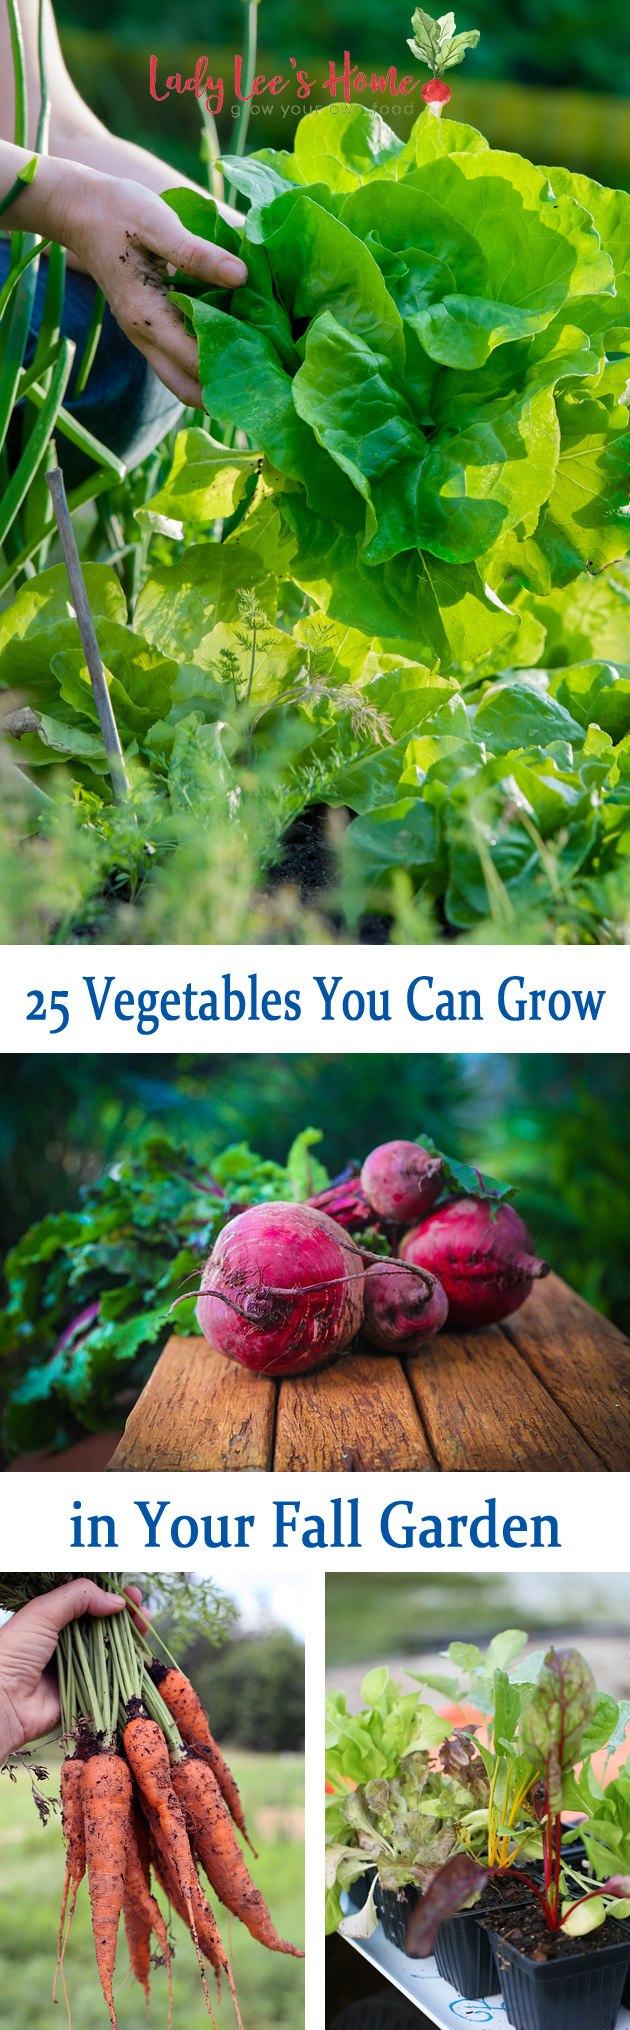 In this post, we go over 25 vegetables you can grow in your fall garden. We will learn when to plant and what to plant for a great fall garden! #LadyLeesHome #gardening #organicgardening #vegetables #growvegetables #fallgarden #gardening #homestead #homesteading #growyourownfood